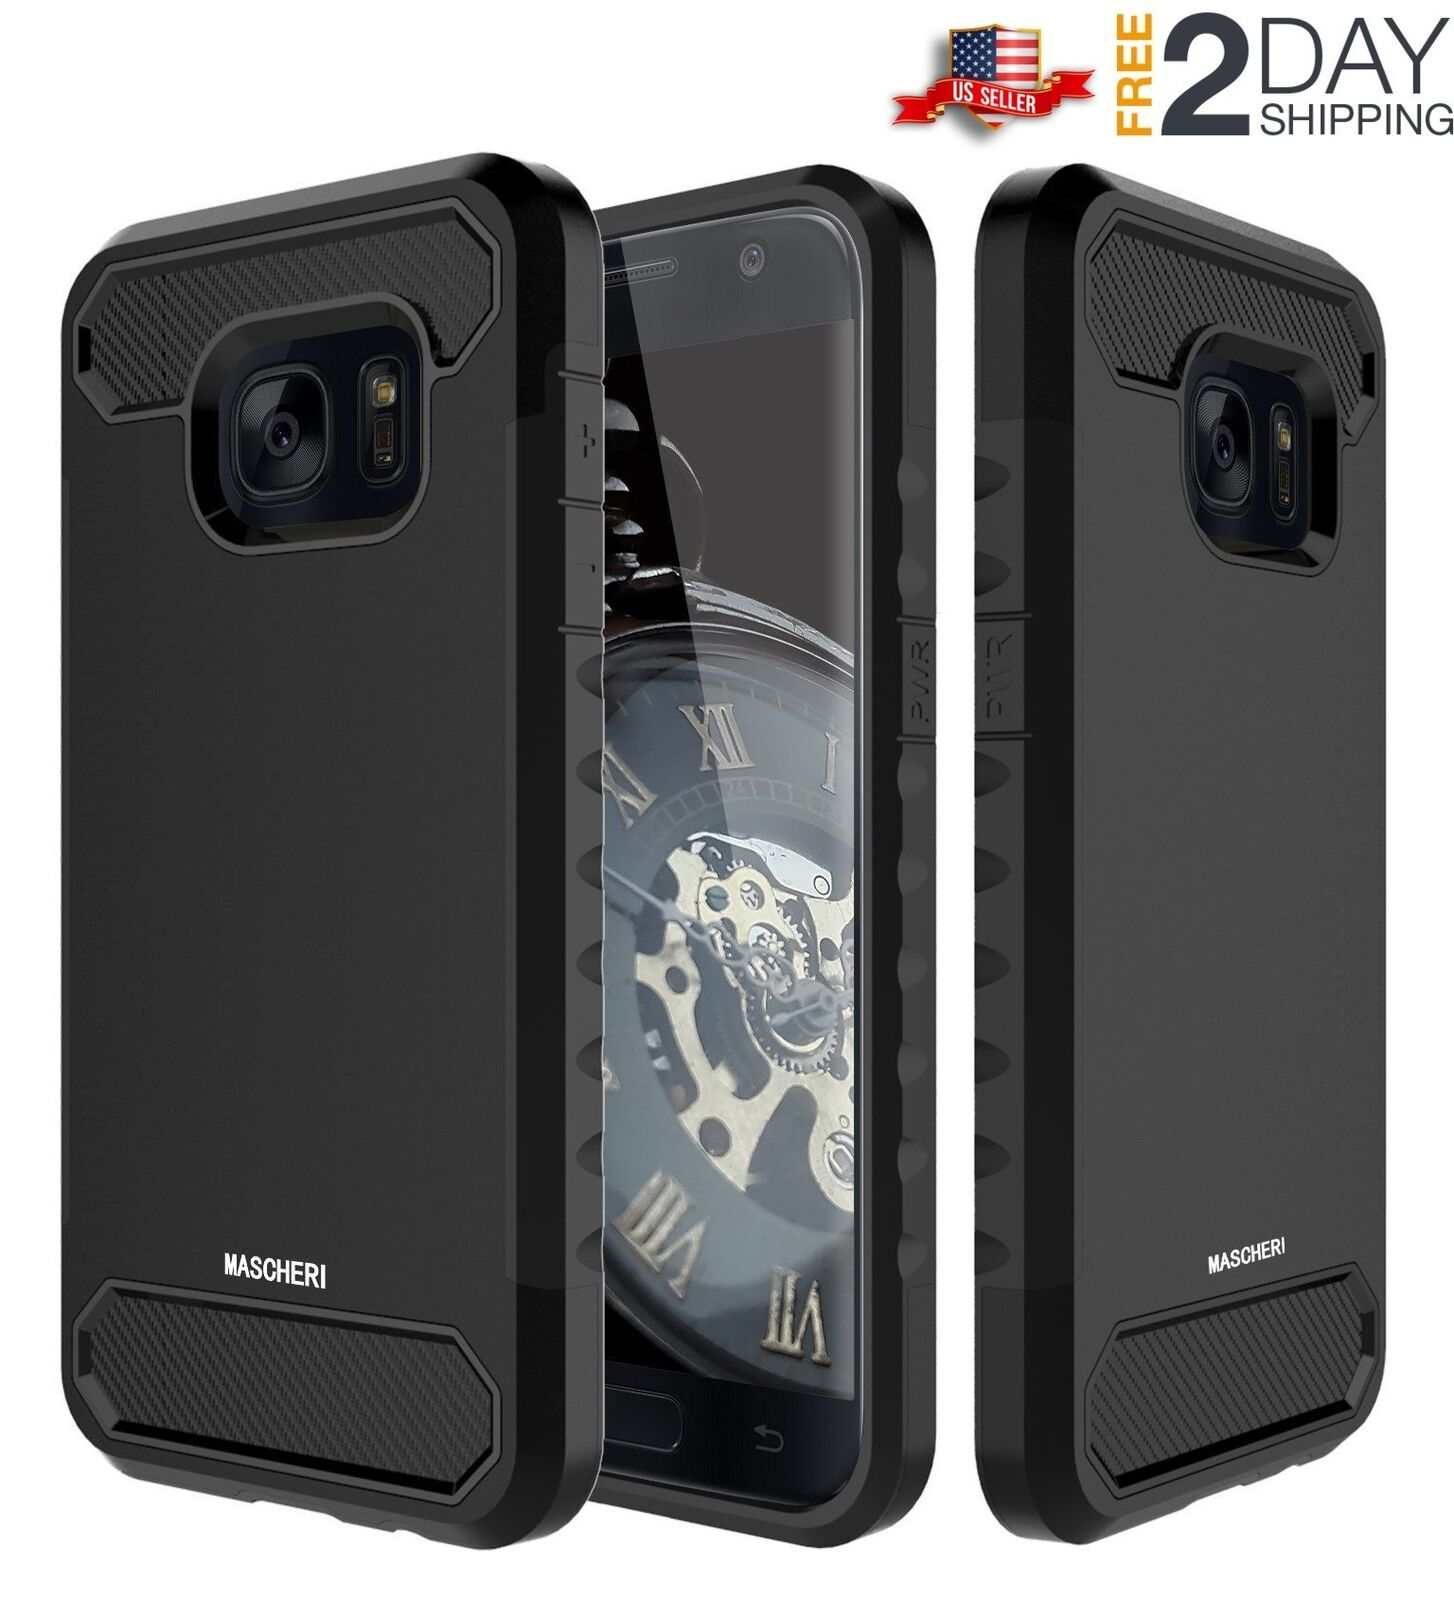 Samsung Galaxy S7 Armor Shockproof Rugged Rubber Hard Case Hybrid Defender Cover